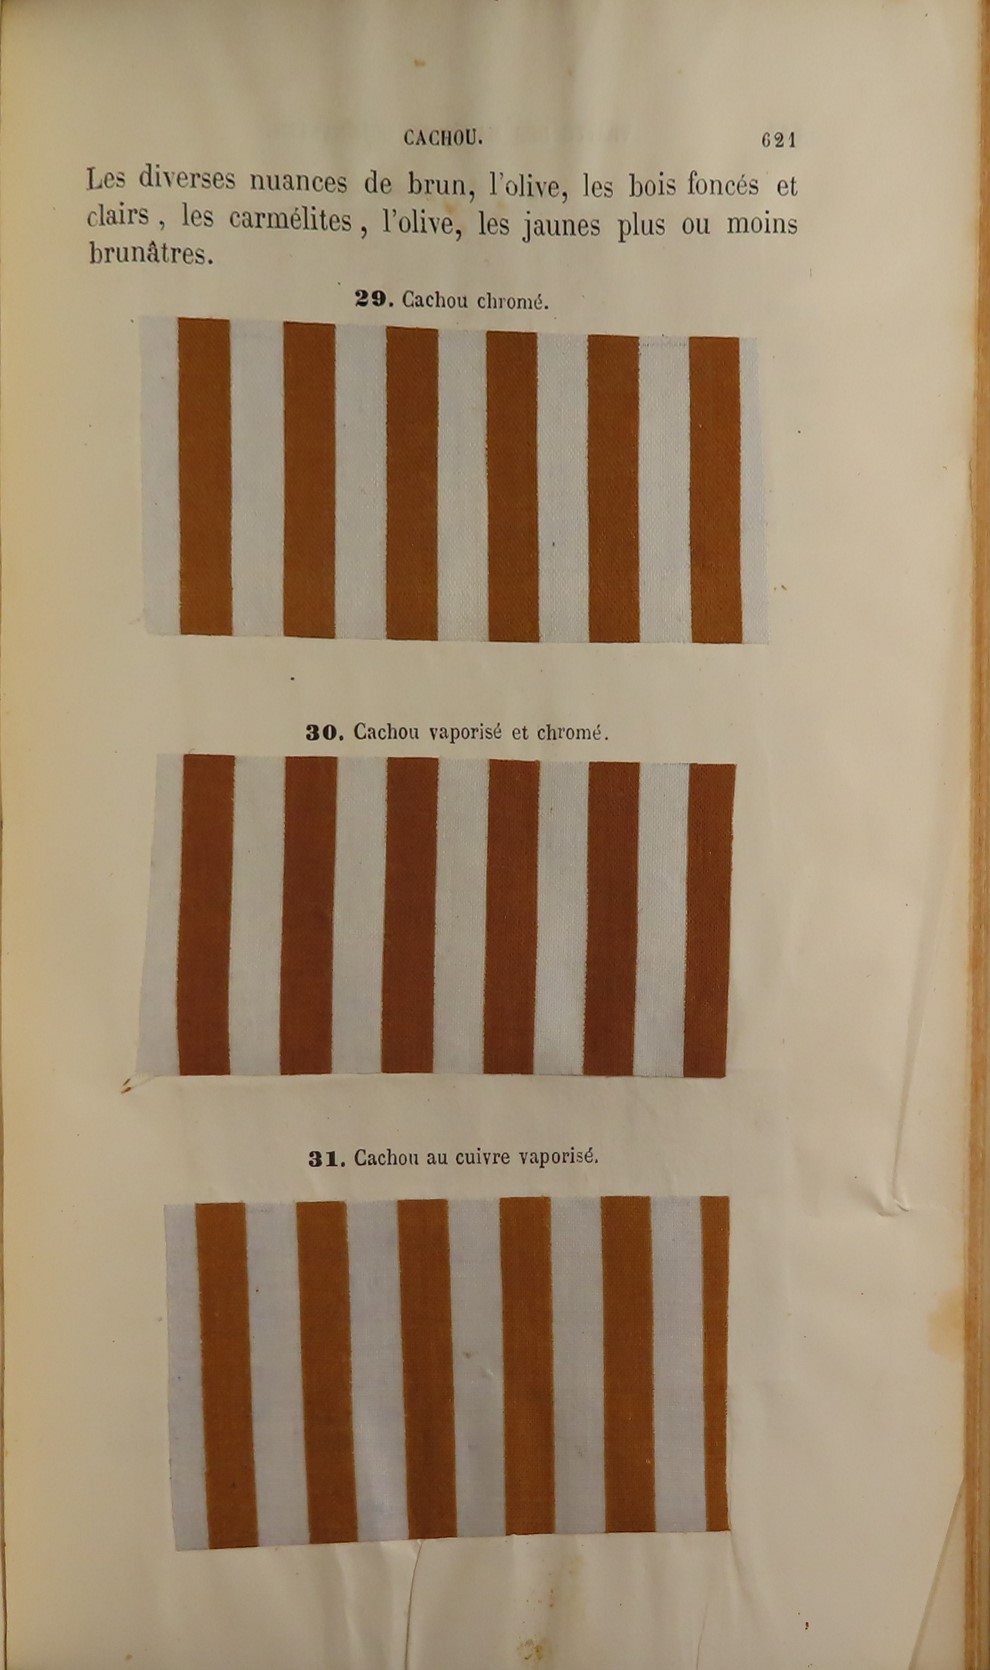 Image for Traité des matières colorantes comprenant leurs applications à la teinture et à l'impression et des notices sur les fibres textiles, les épaississants et les mordants. (Treaty on coloring matters, including their applications in dyeing and printing and notices on textile fibers, thickeners and mordants) -- 2 Volumes